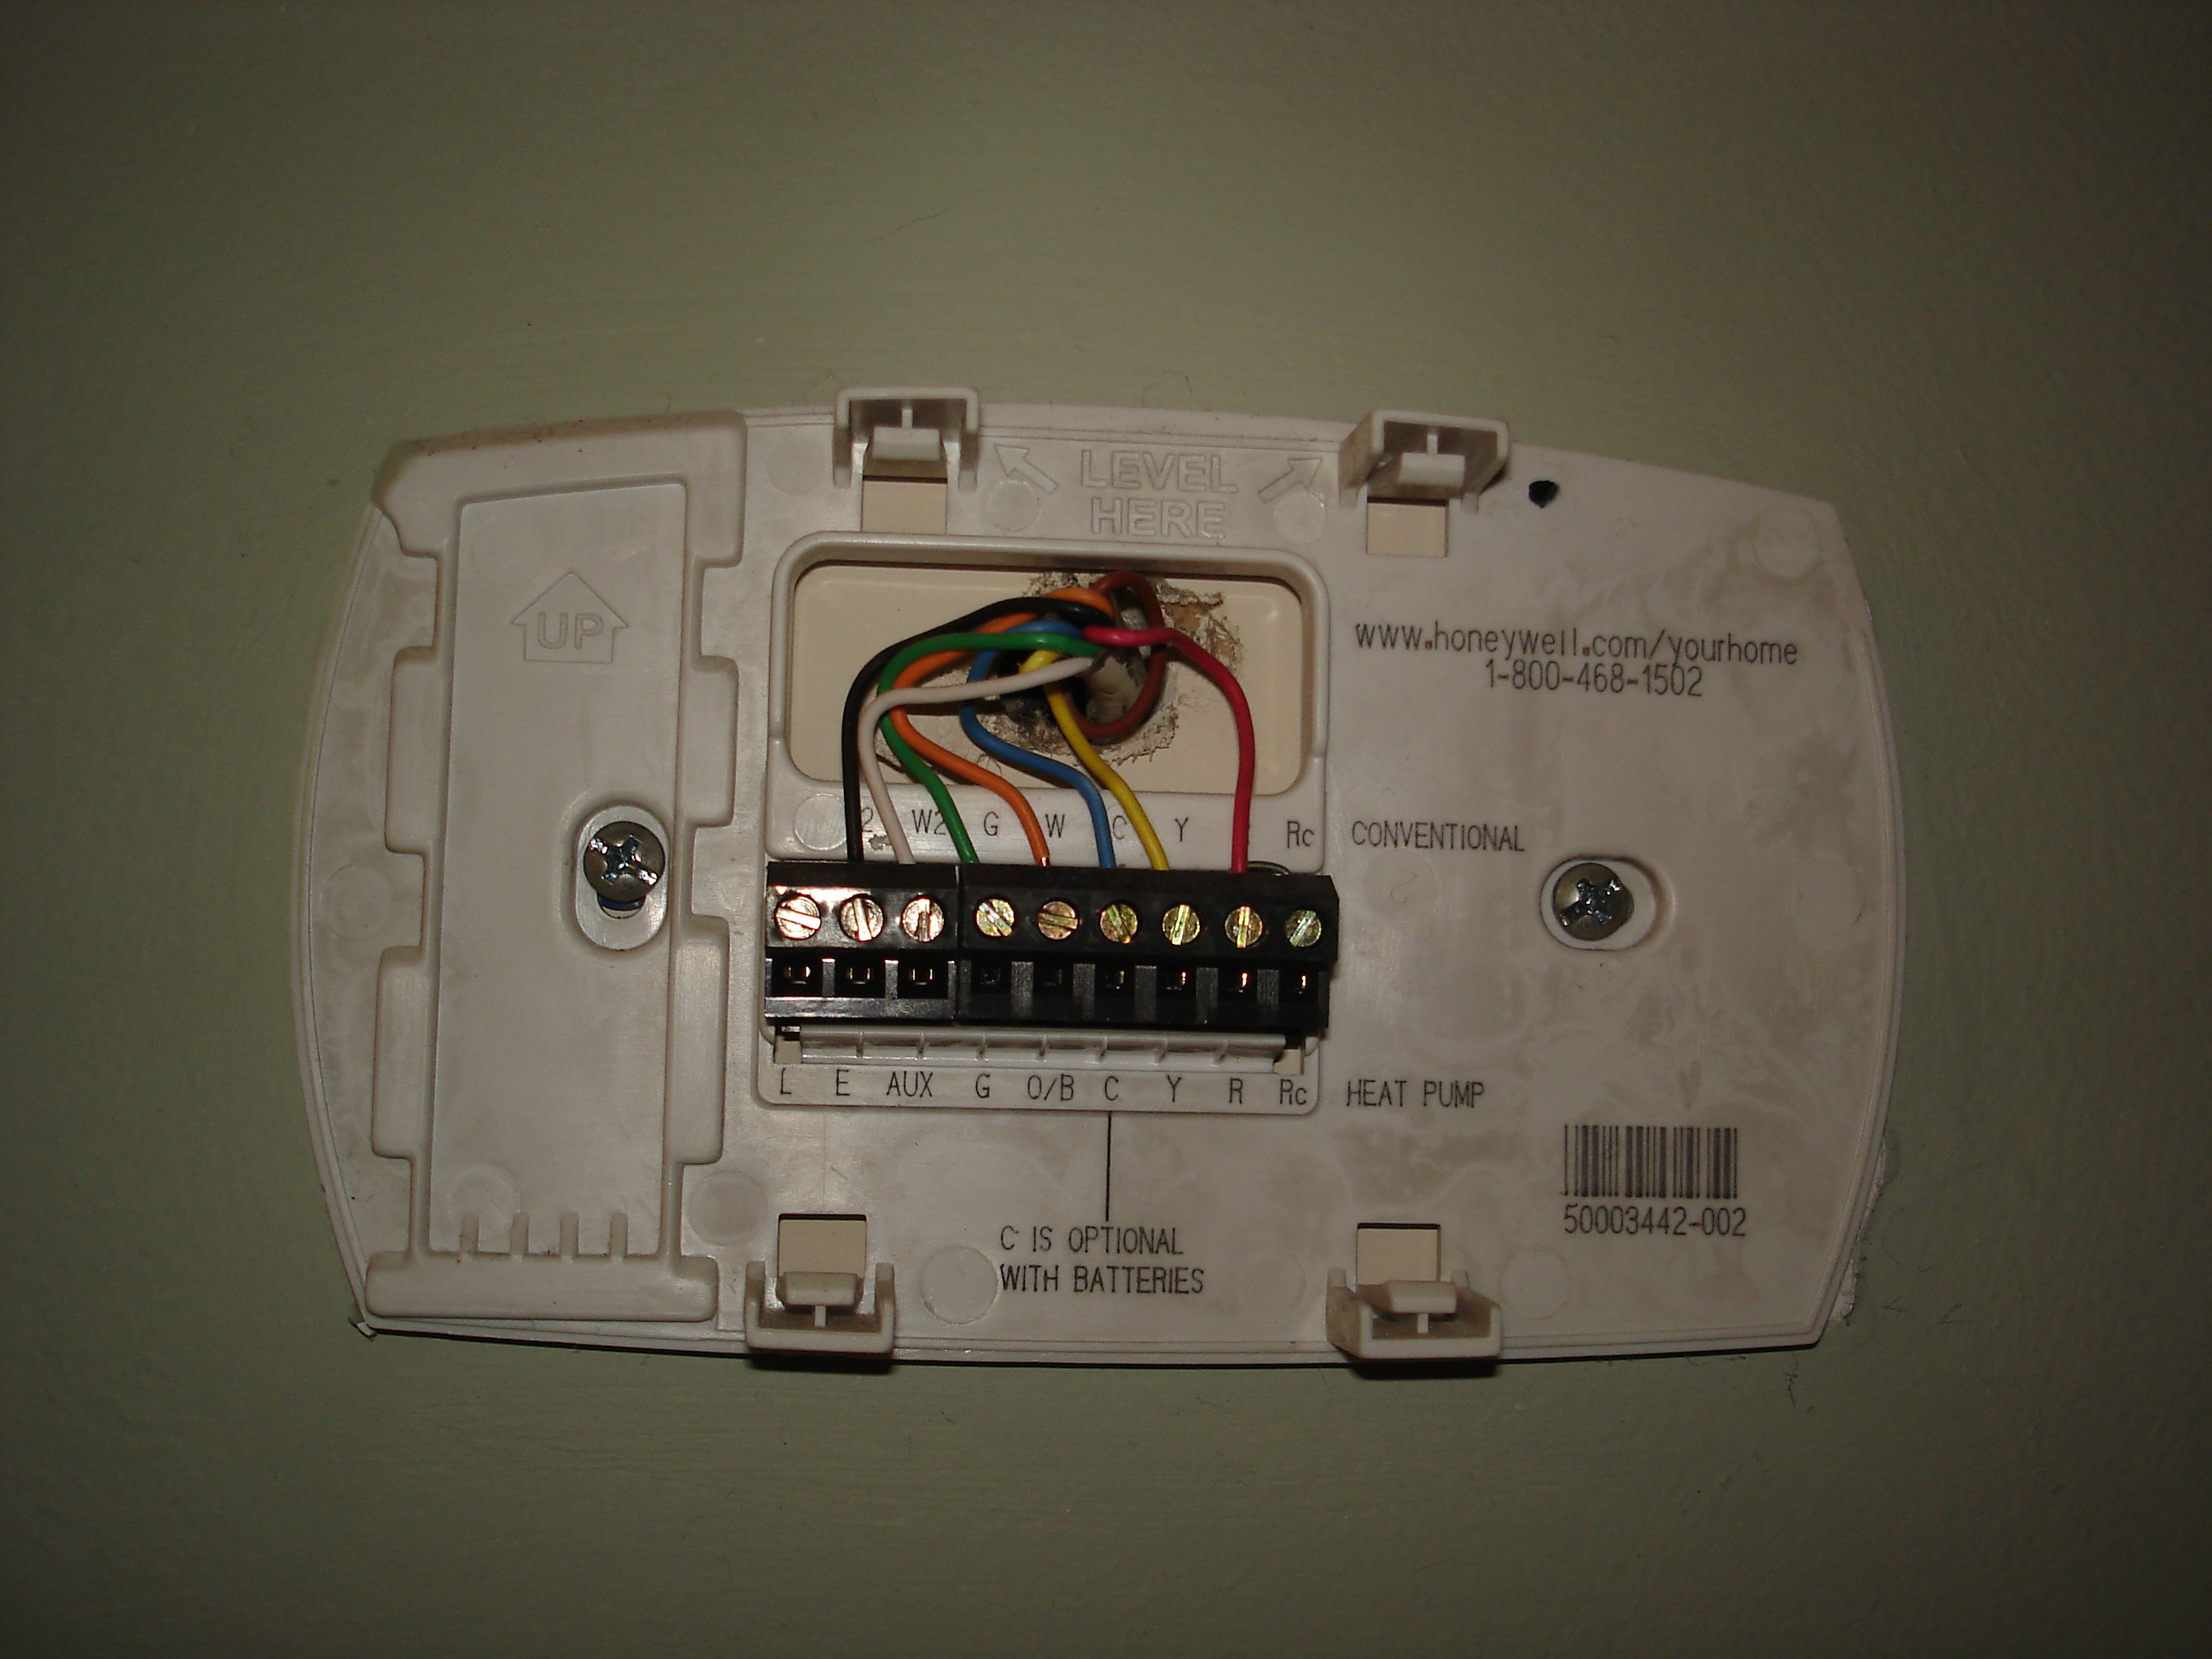 Stunning honeywell wi fi thermostat wiring diagram photos the best wonderful honeywell digital thermostat wiring diagram for asfbconference2016